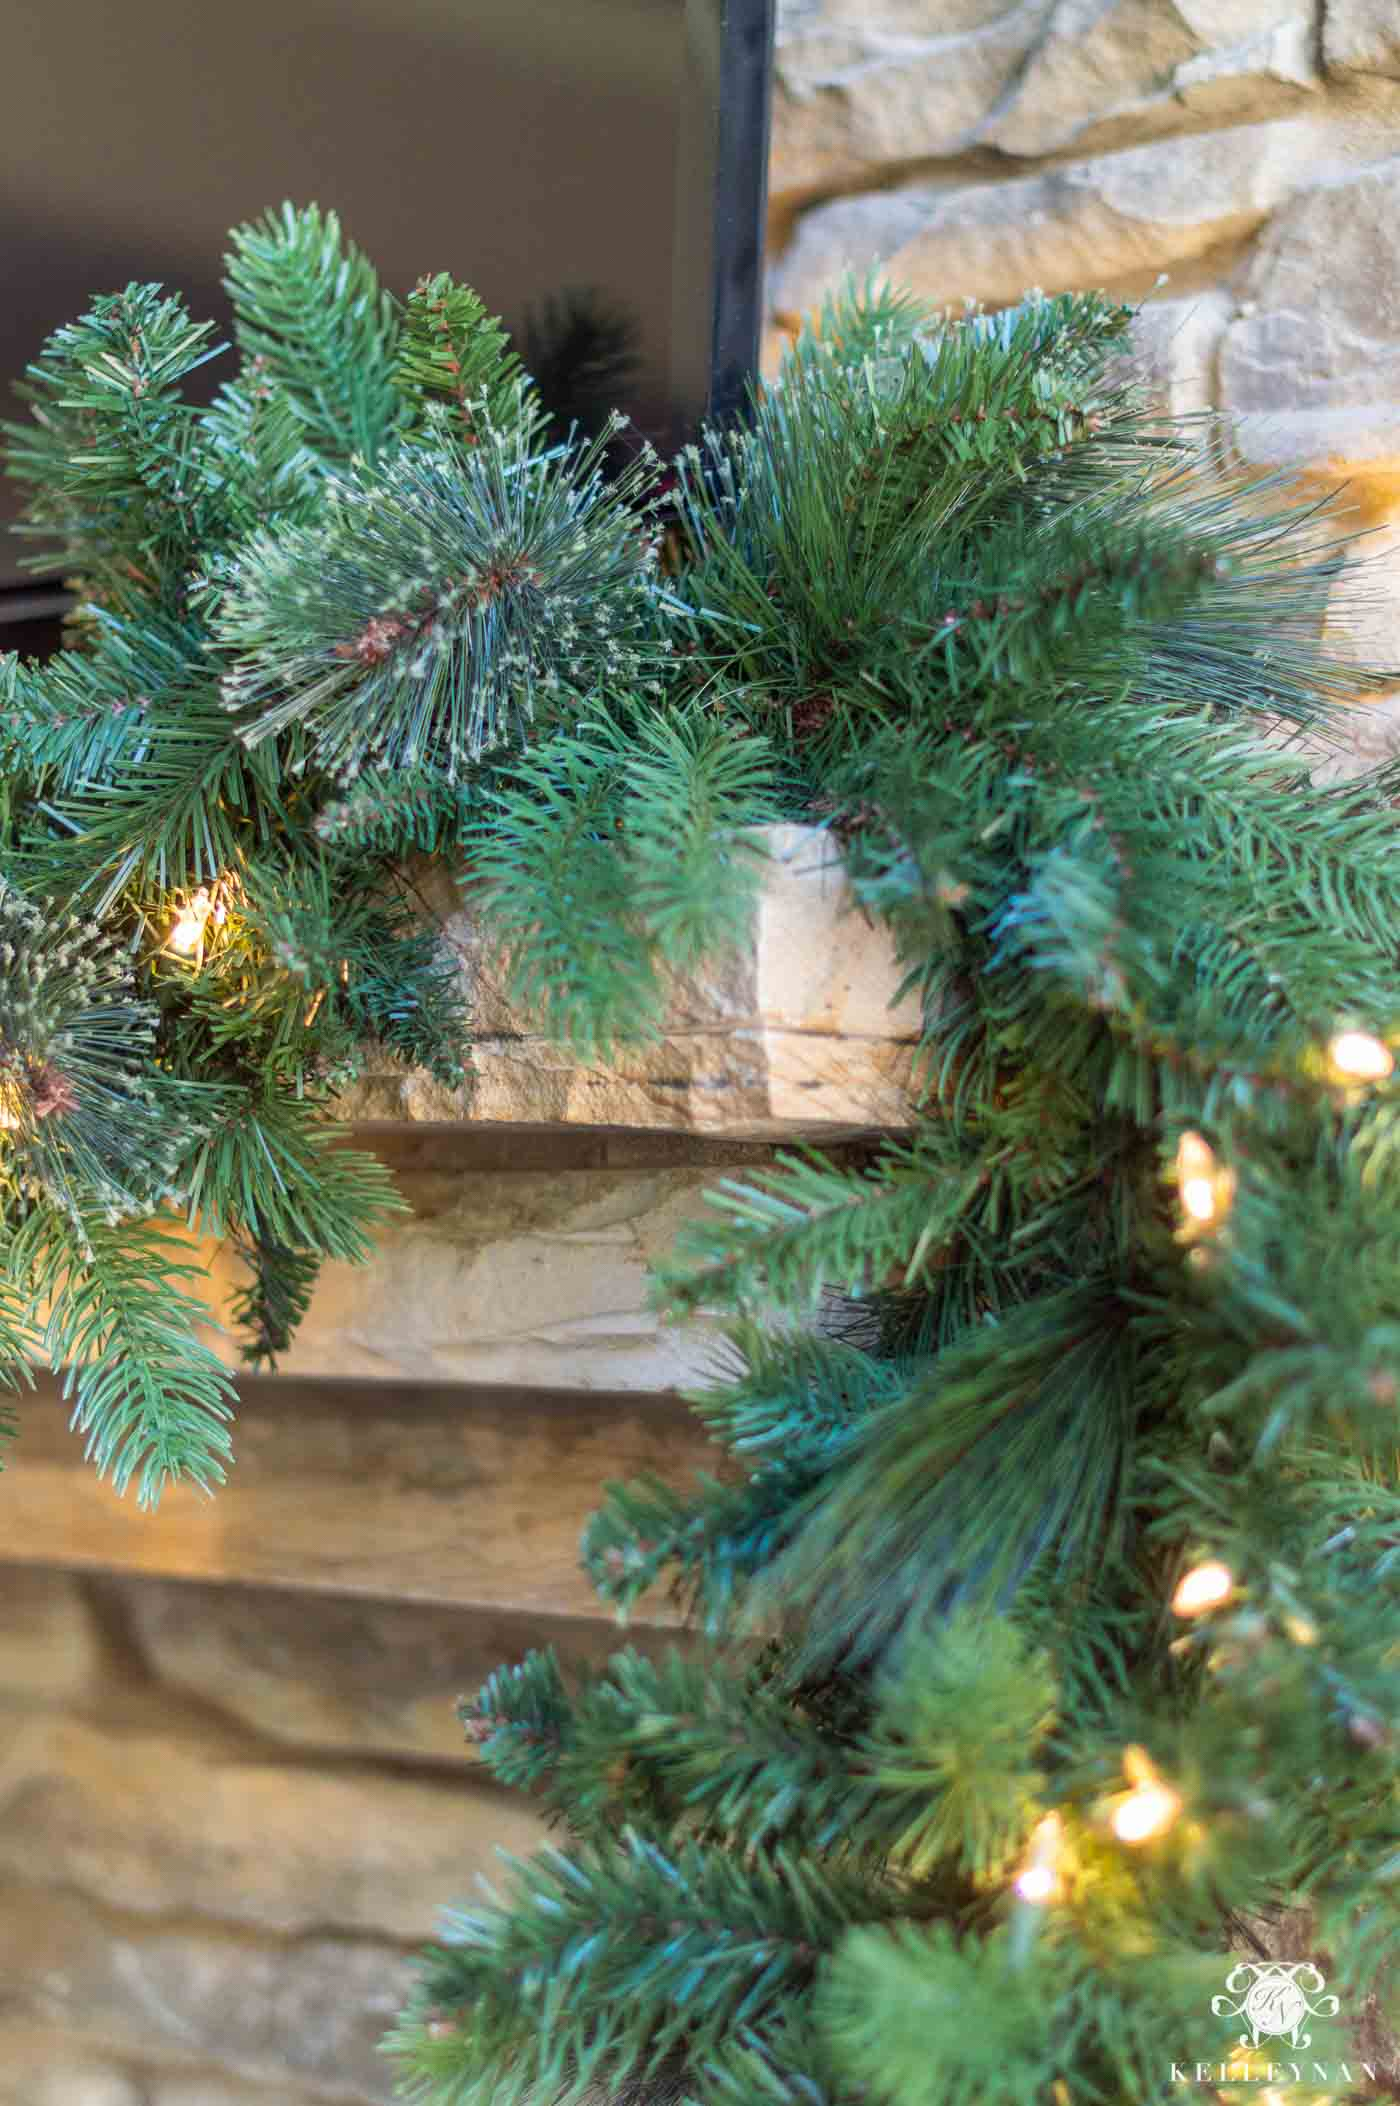 How to Anchor Christmas Garland